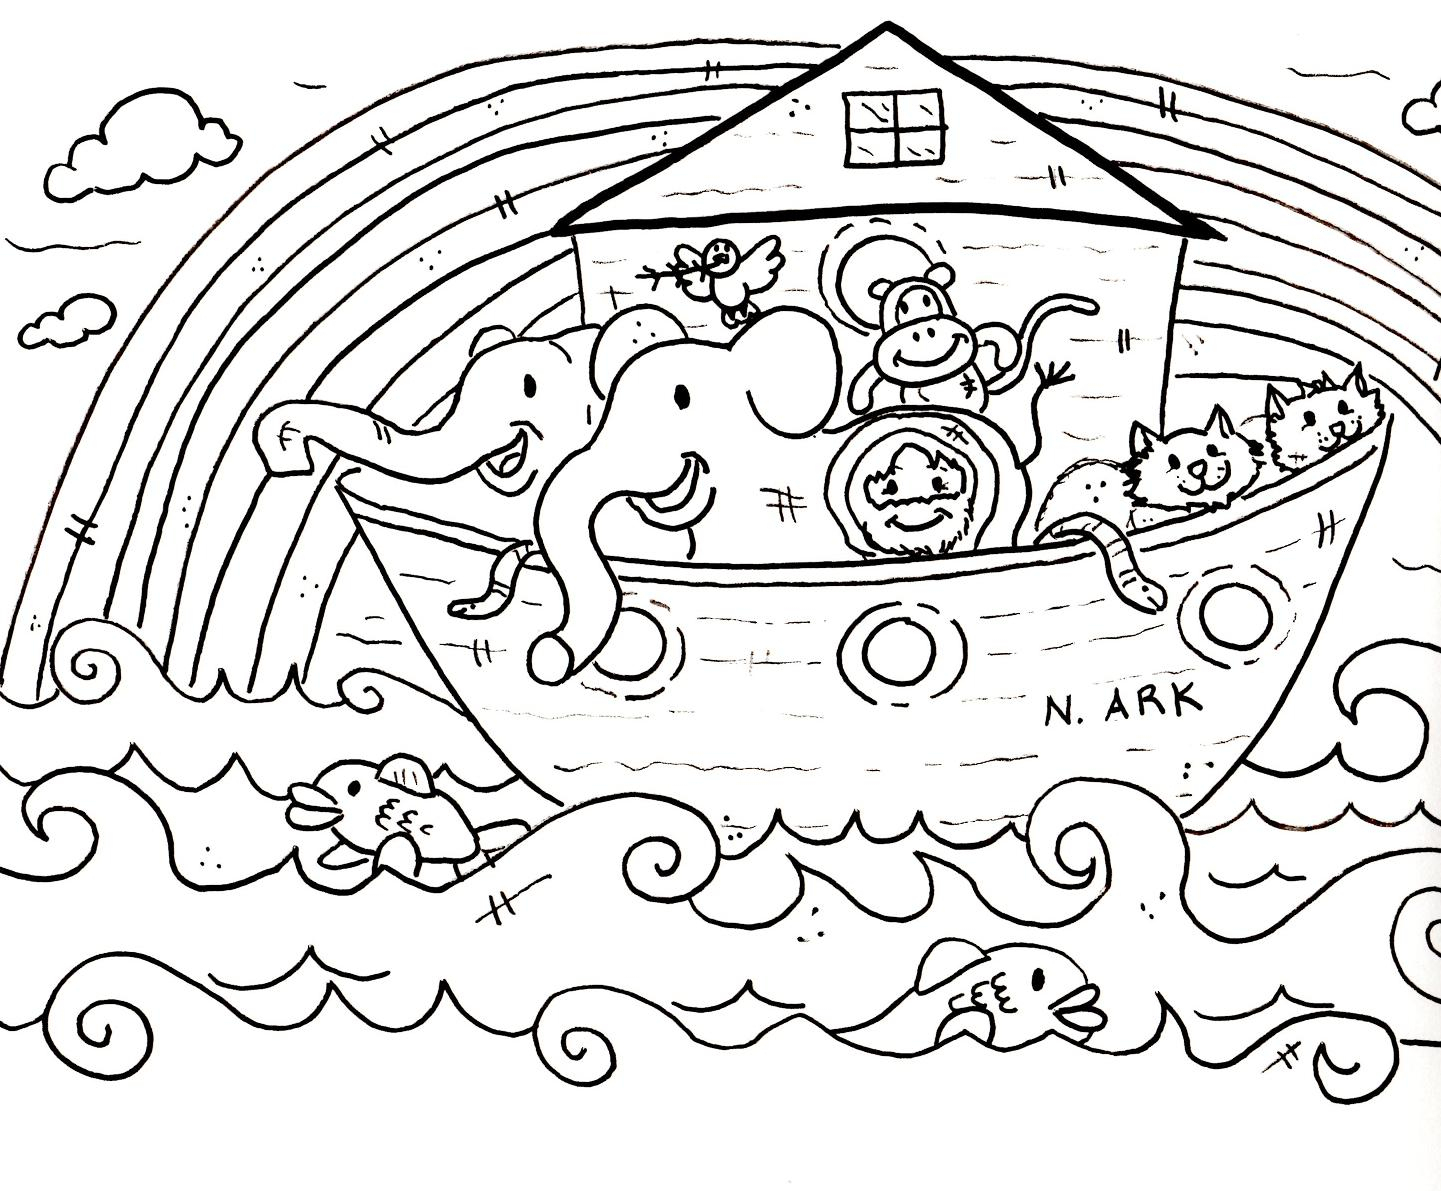 Coloring Pages : 53 Staggering Free Printable Bible Story Coloring - Free Printable Bible Coloring Pages